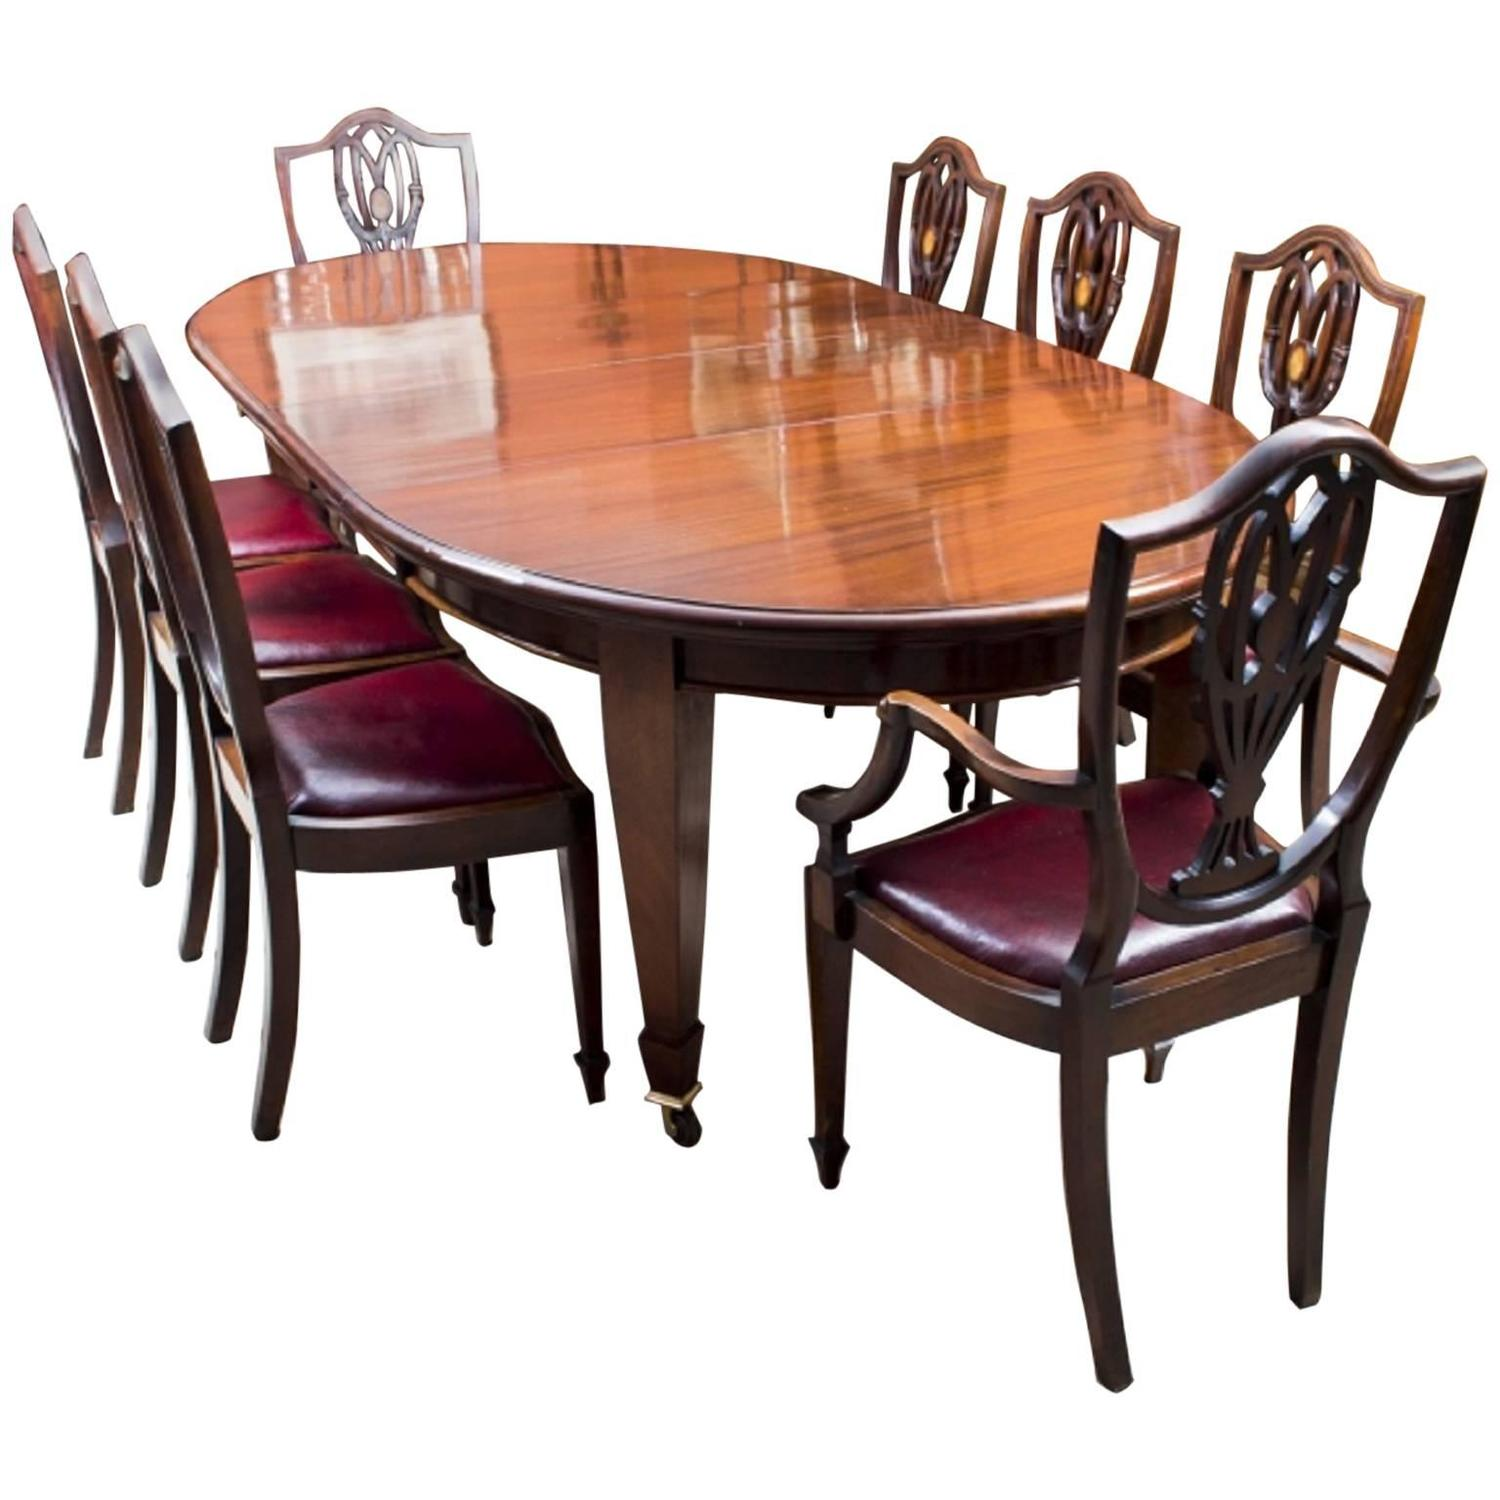 Antique 8ft edwardian dining table 8 chairs ref for 8 chair dining table